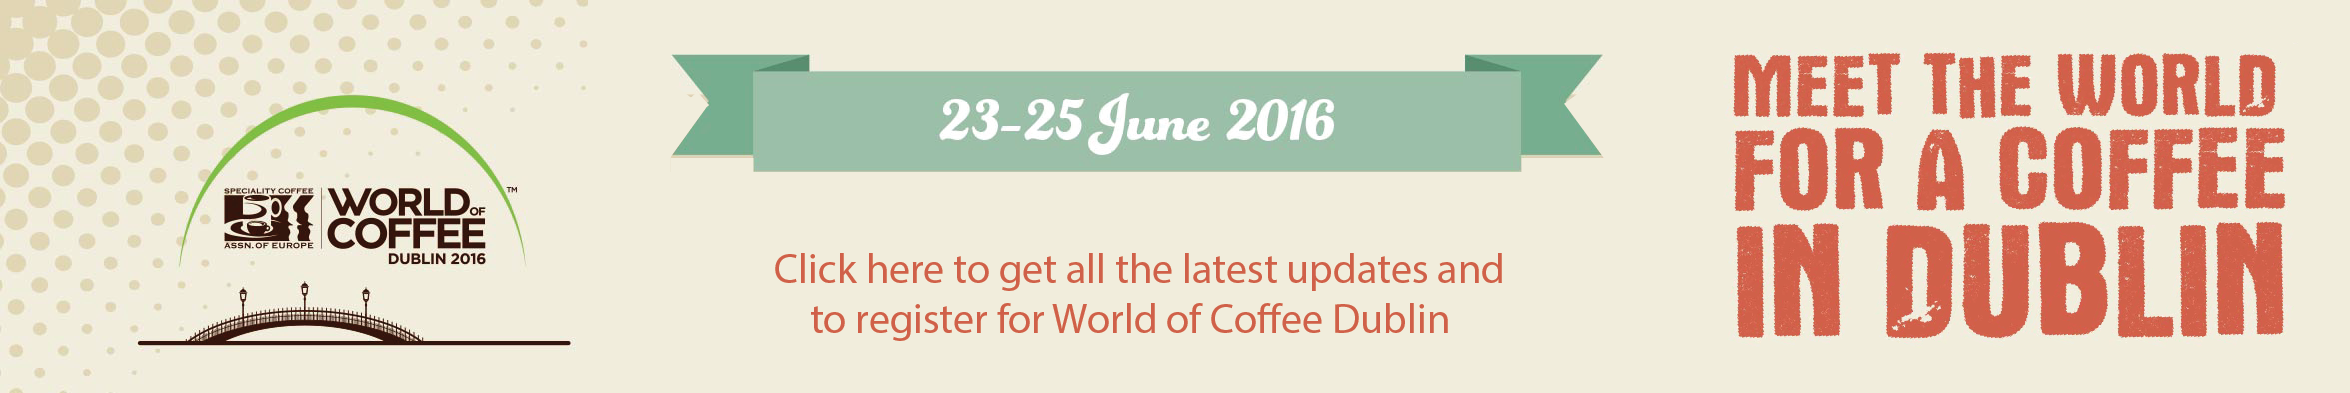 World-of-Coffee-Banner-Register-here